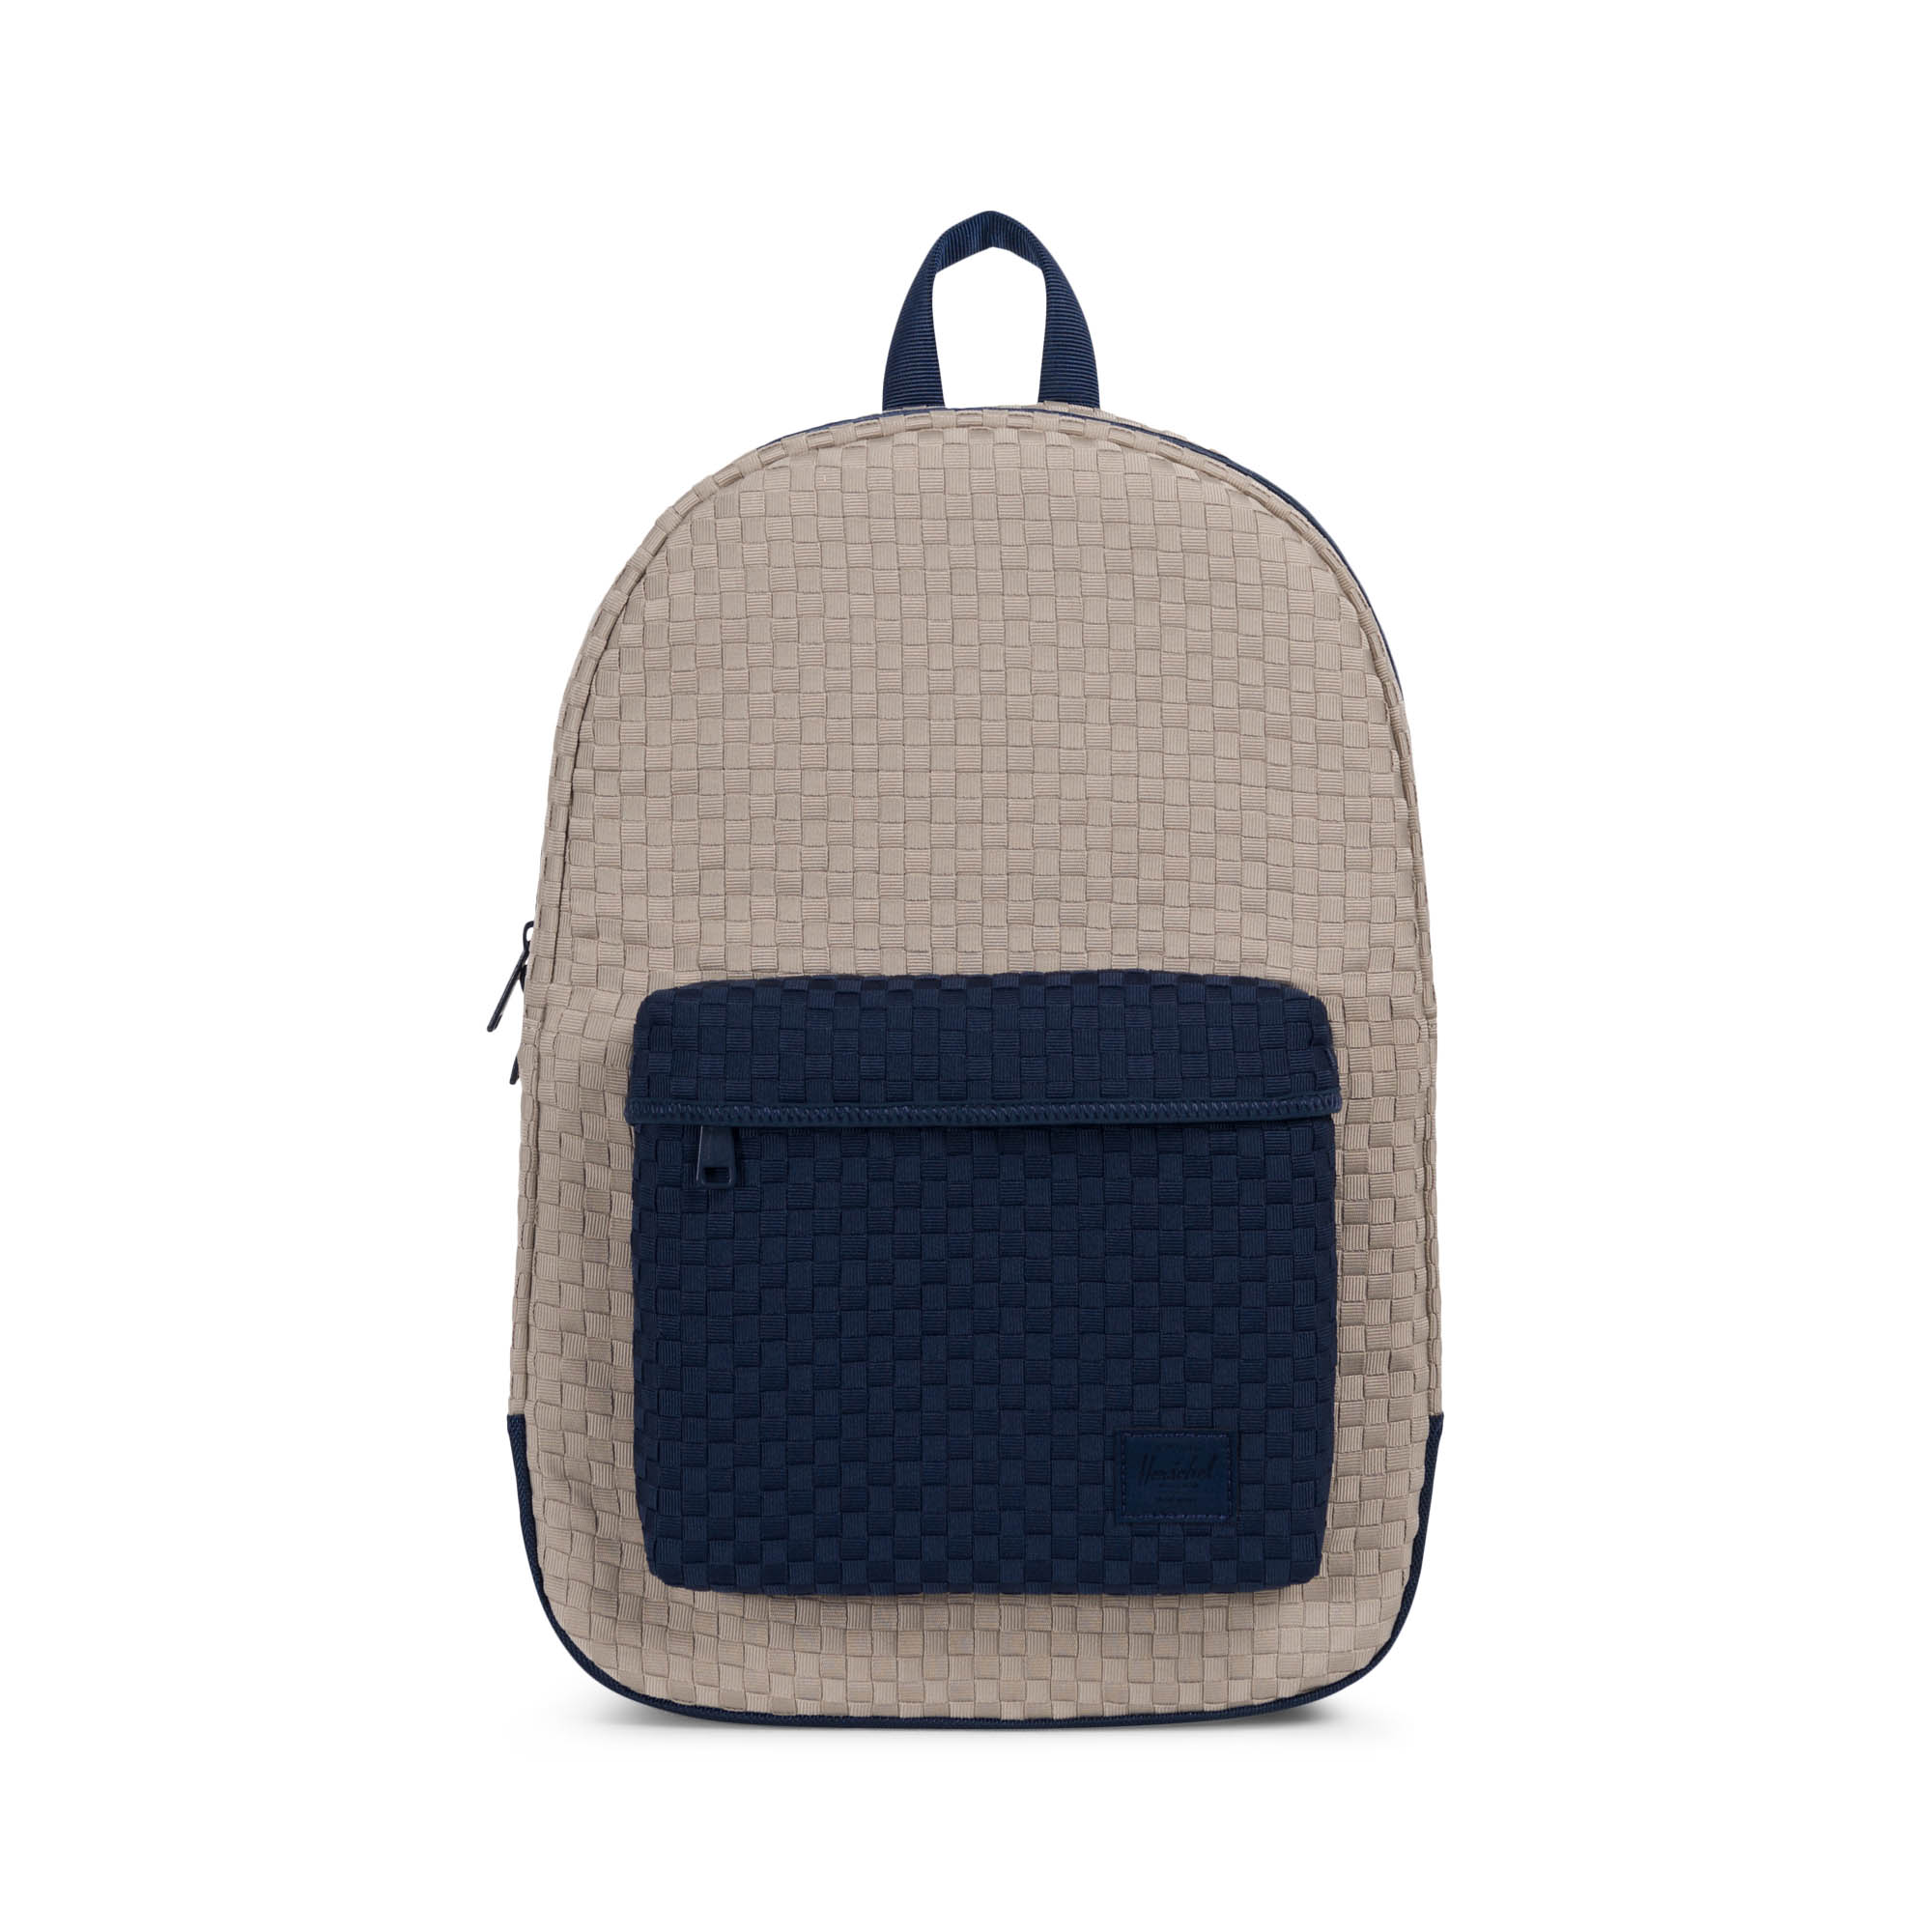 bbd5bb05f94 Lawson Backpack Woven